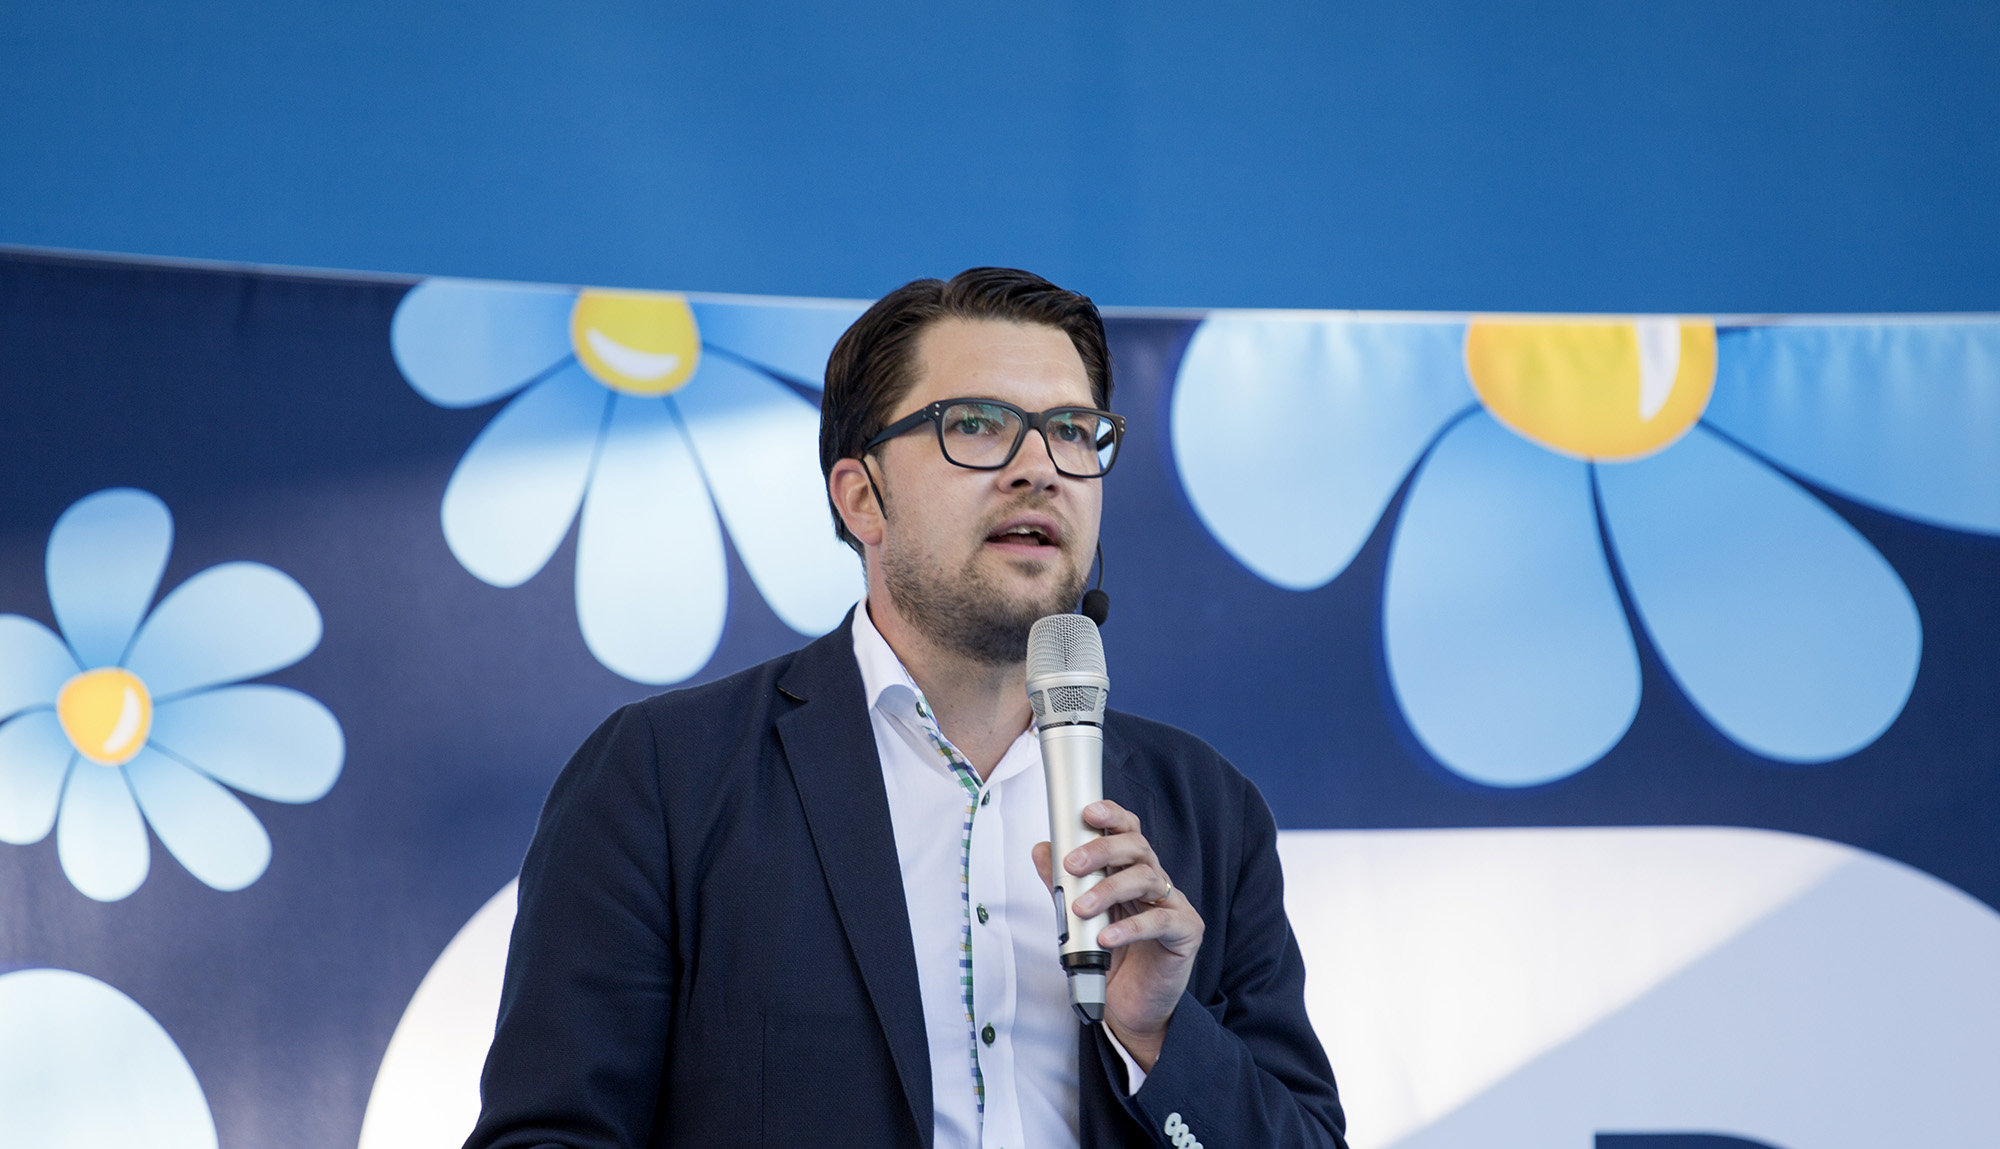 Jimmie Åkesson - authoritarian politician Sweden